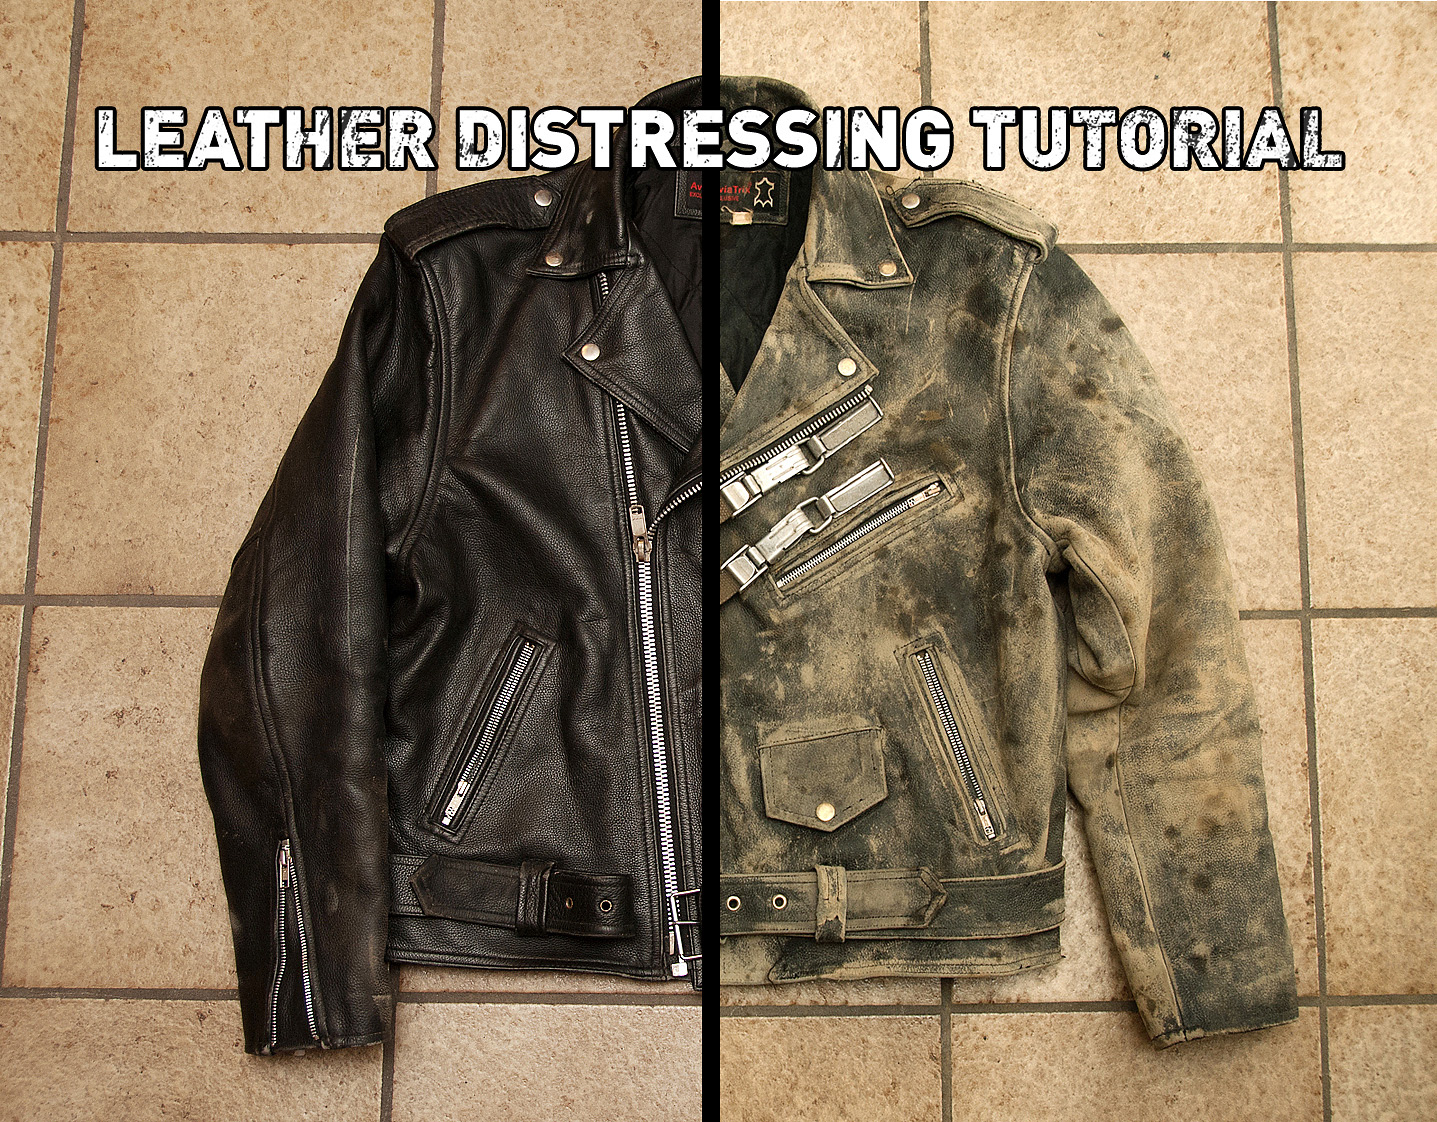 Jacket Tutorial